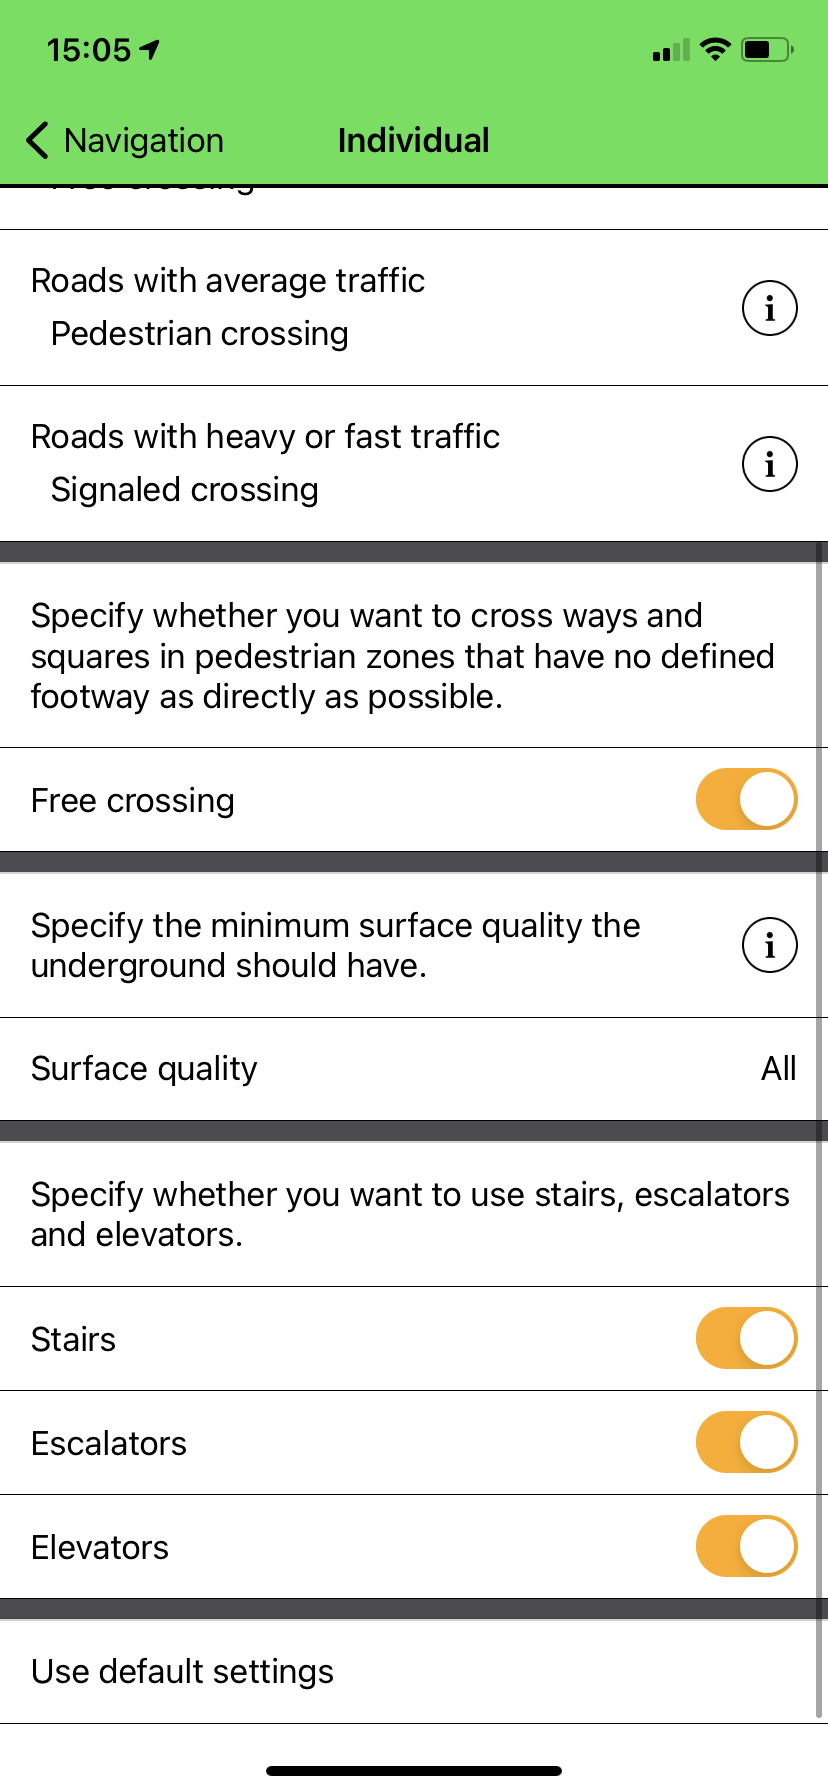 App screen with individualization settings part 2